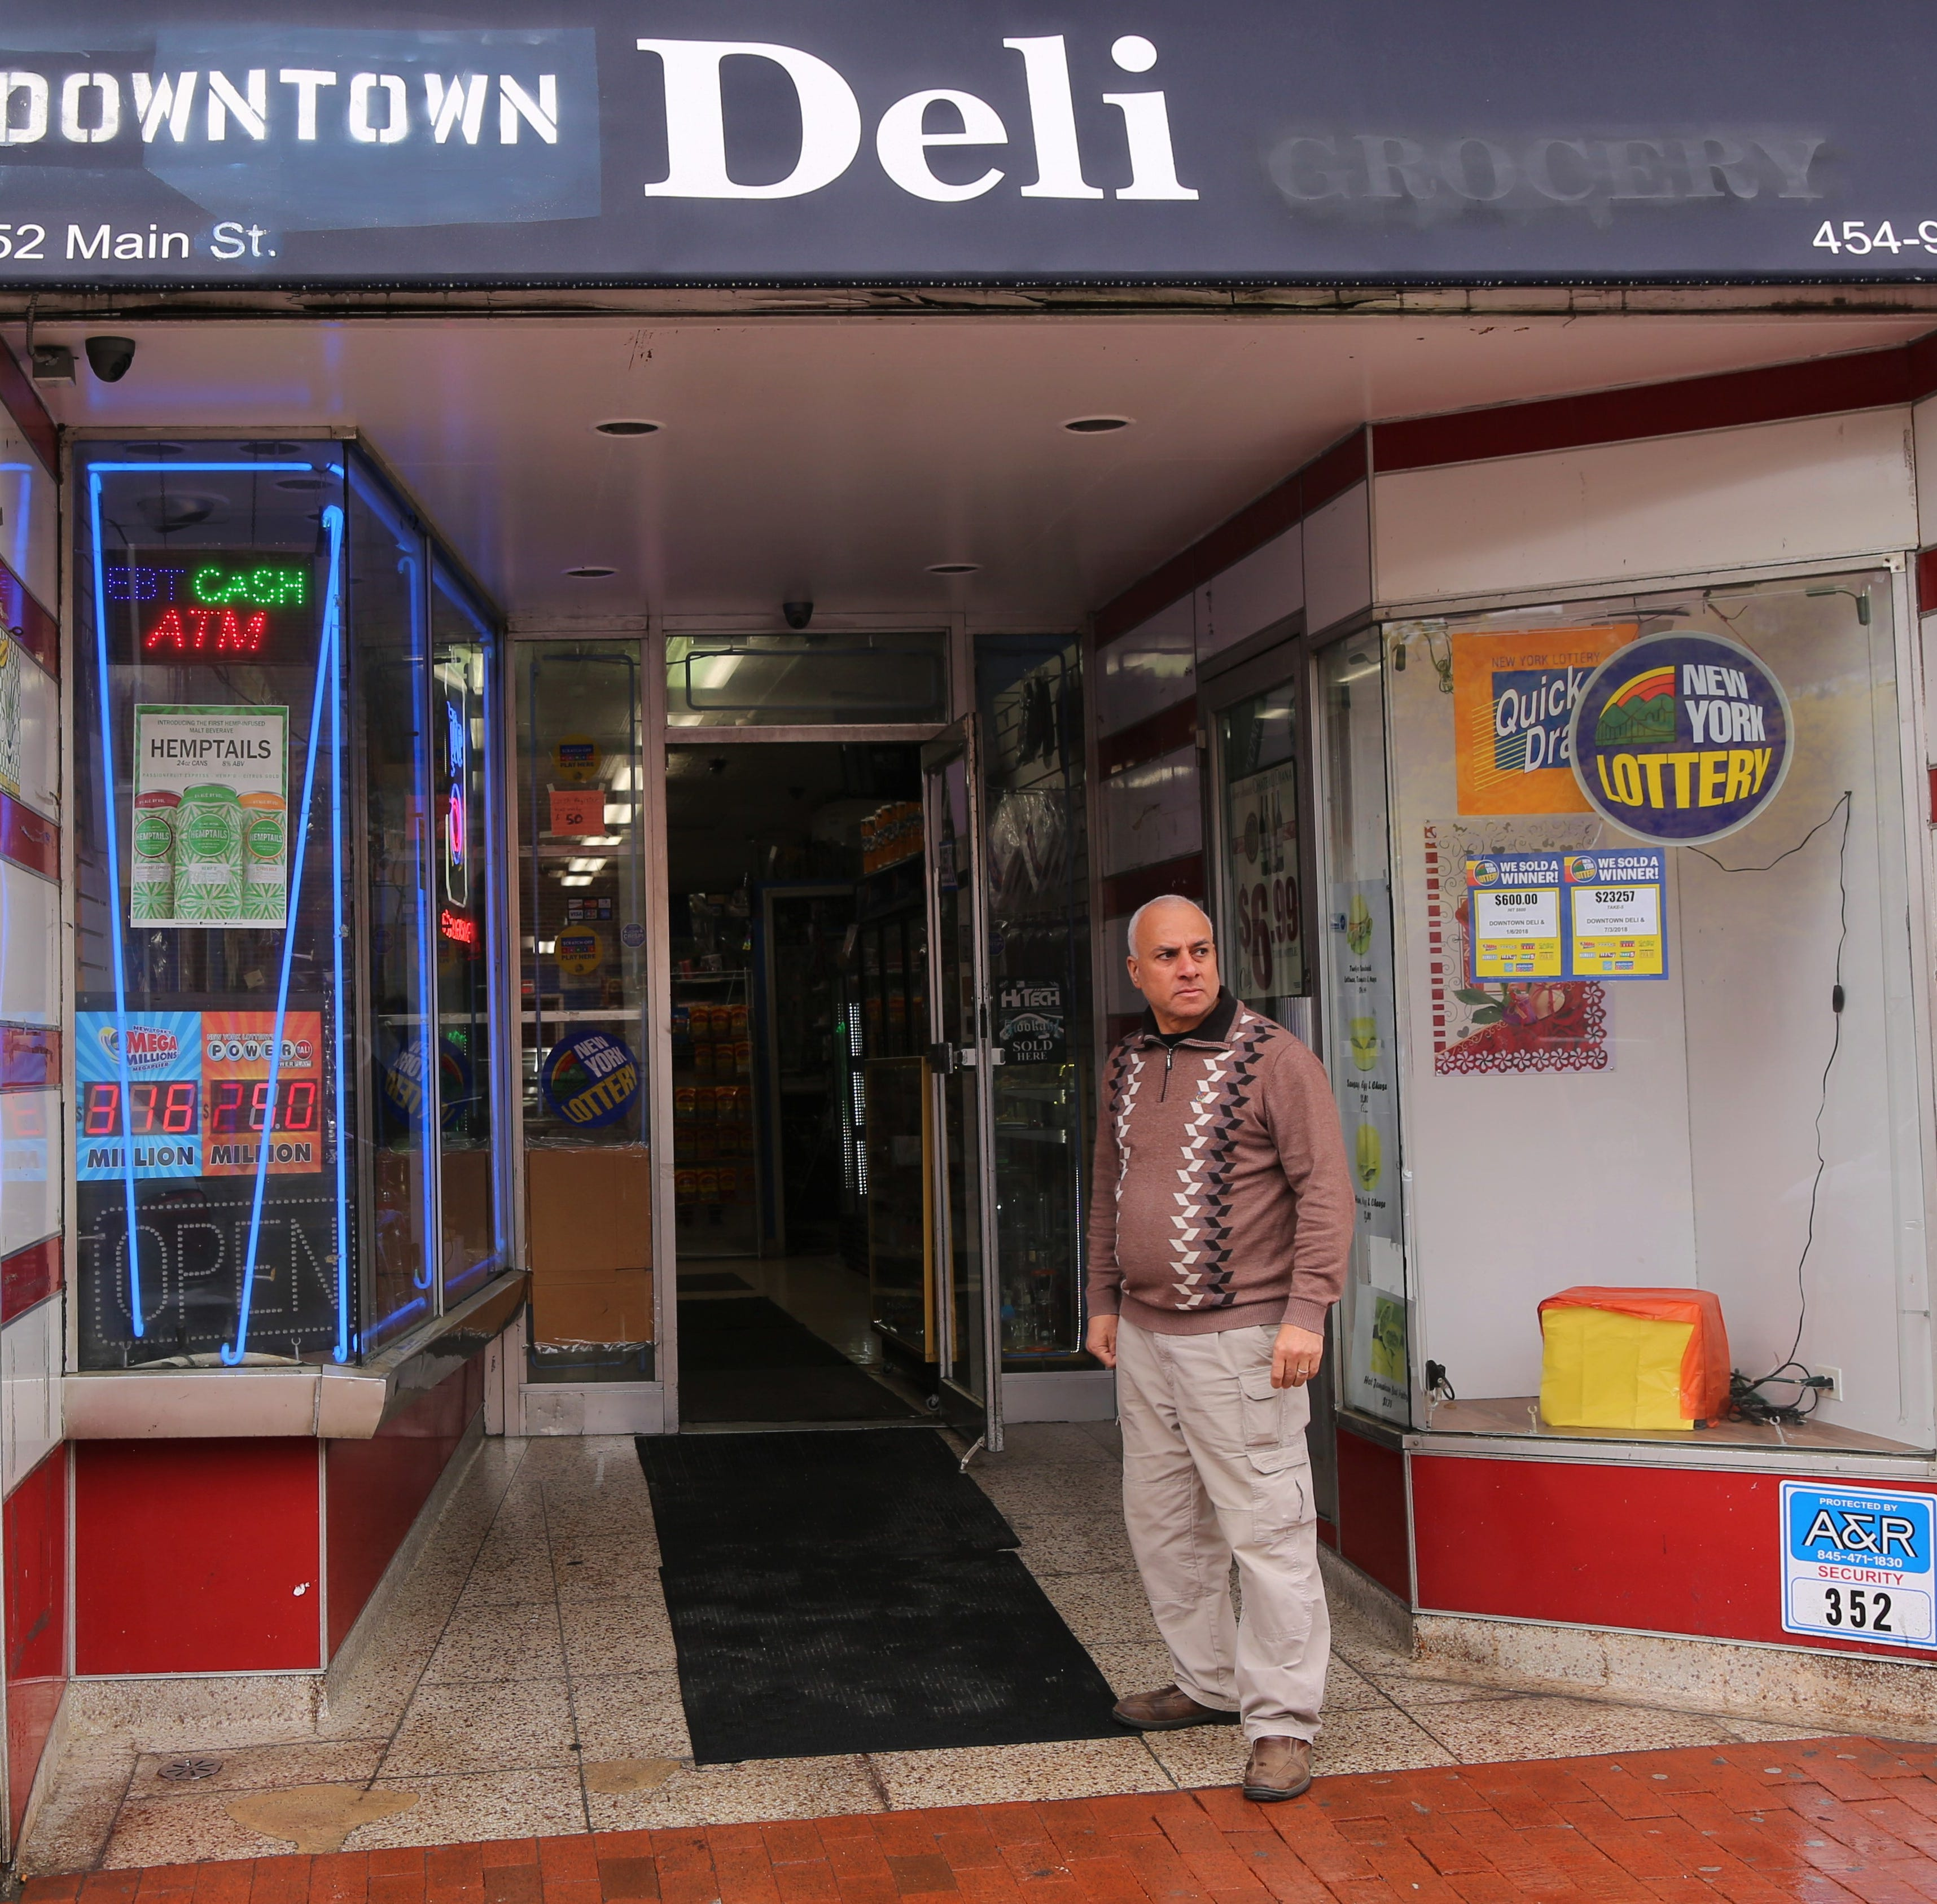 Osama Afifi stands outside his store Downtown Deli in the City of Poughkeepsie on May 12, 2019. On Tuesday, he was in his store when an upset customer shot a handgun at him, nearly hitting him.